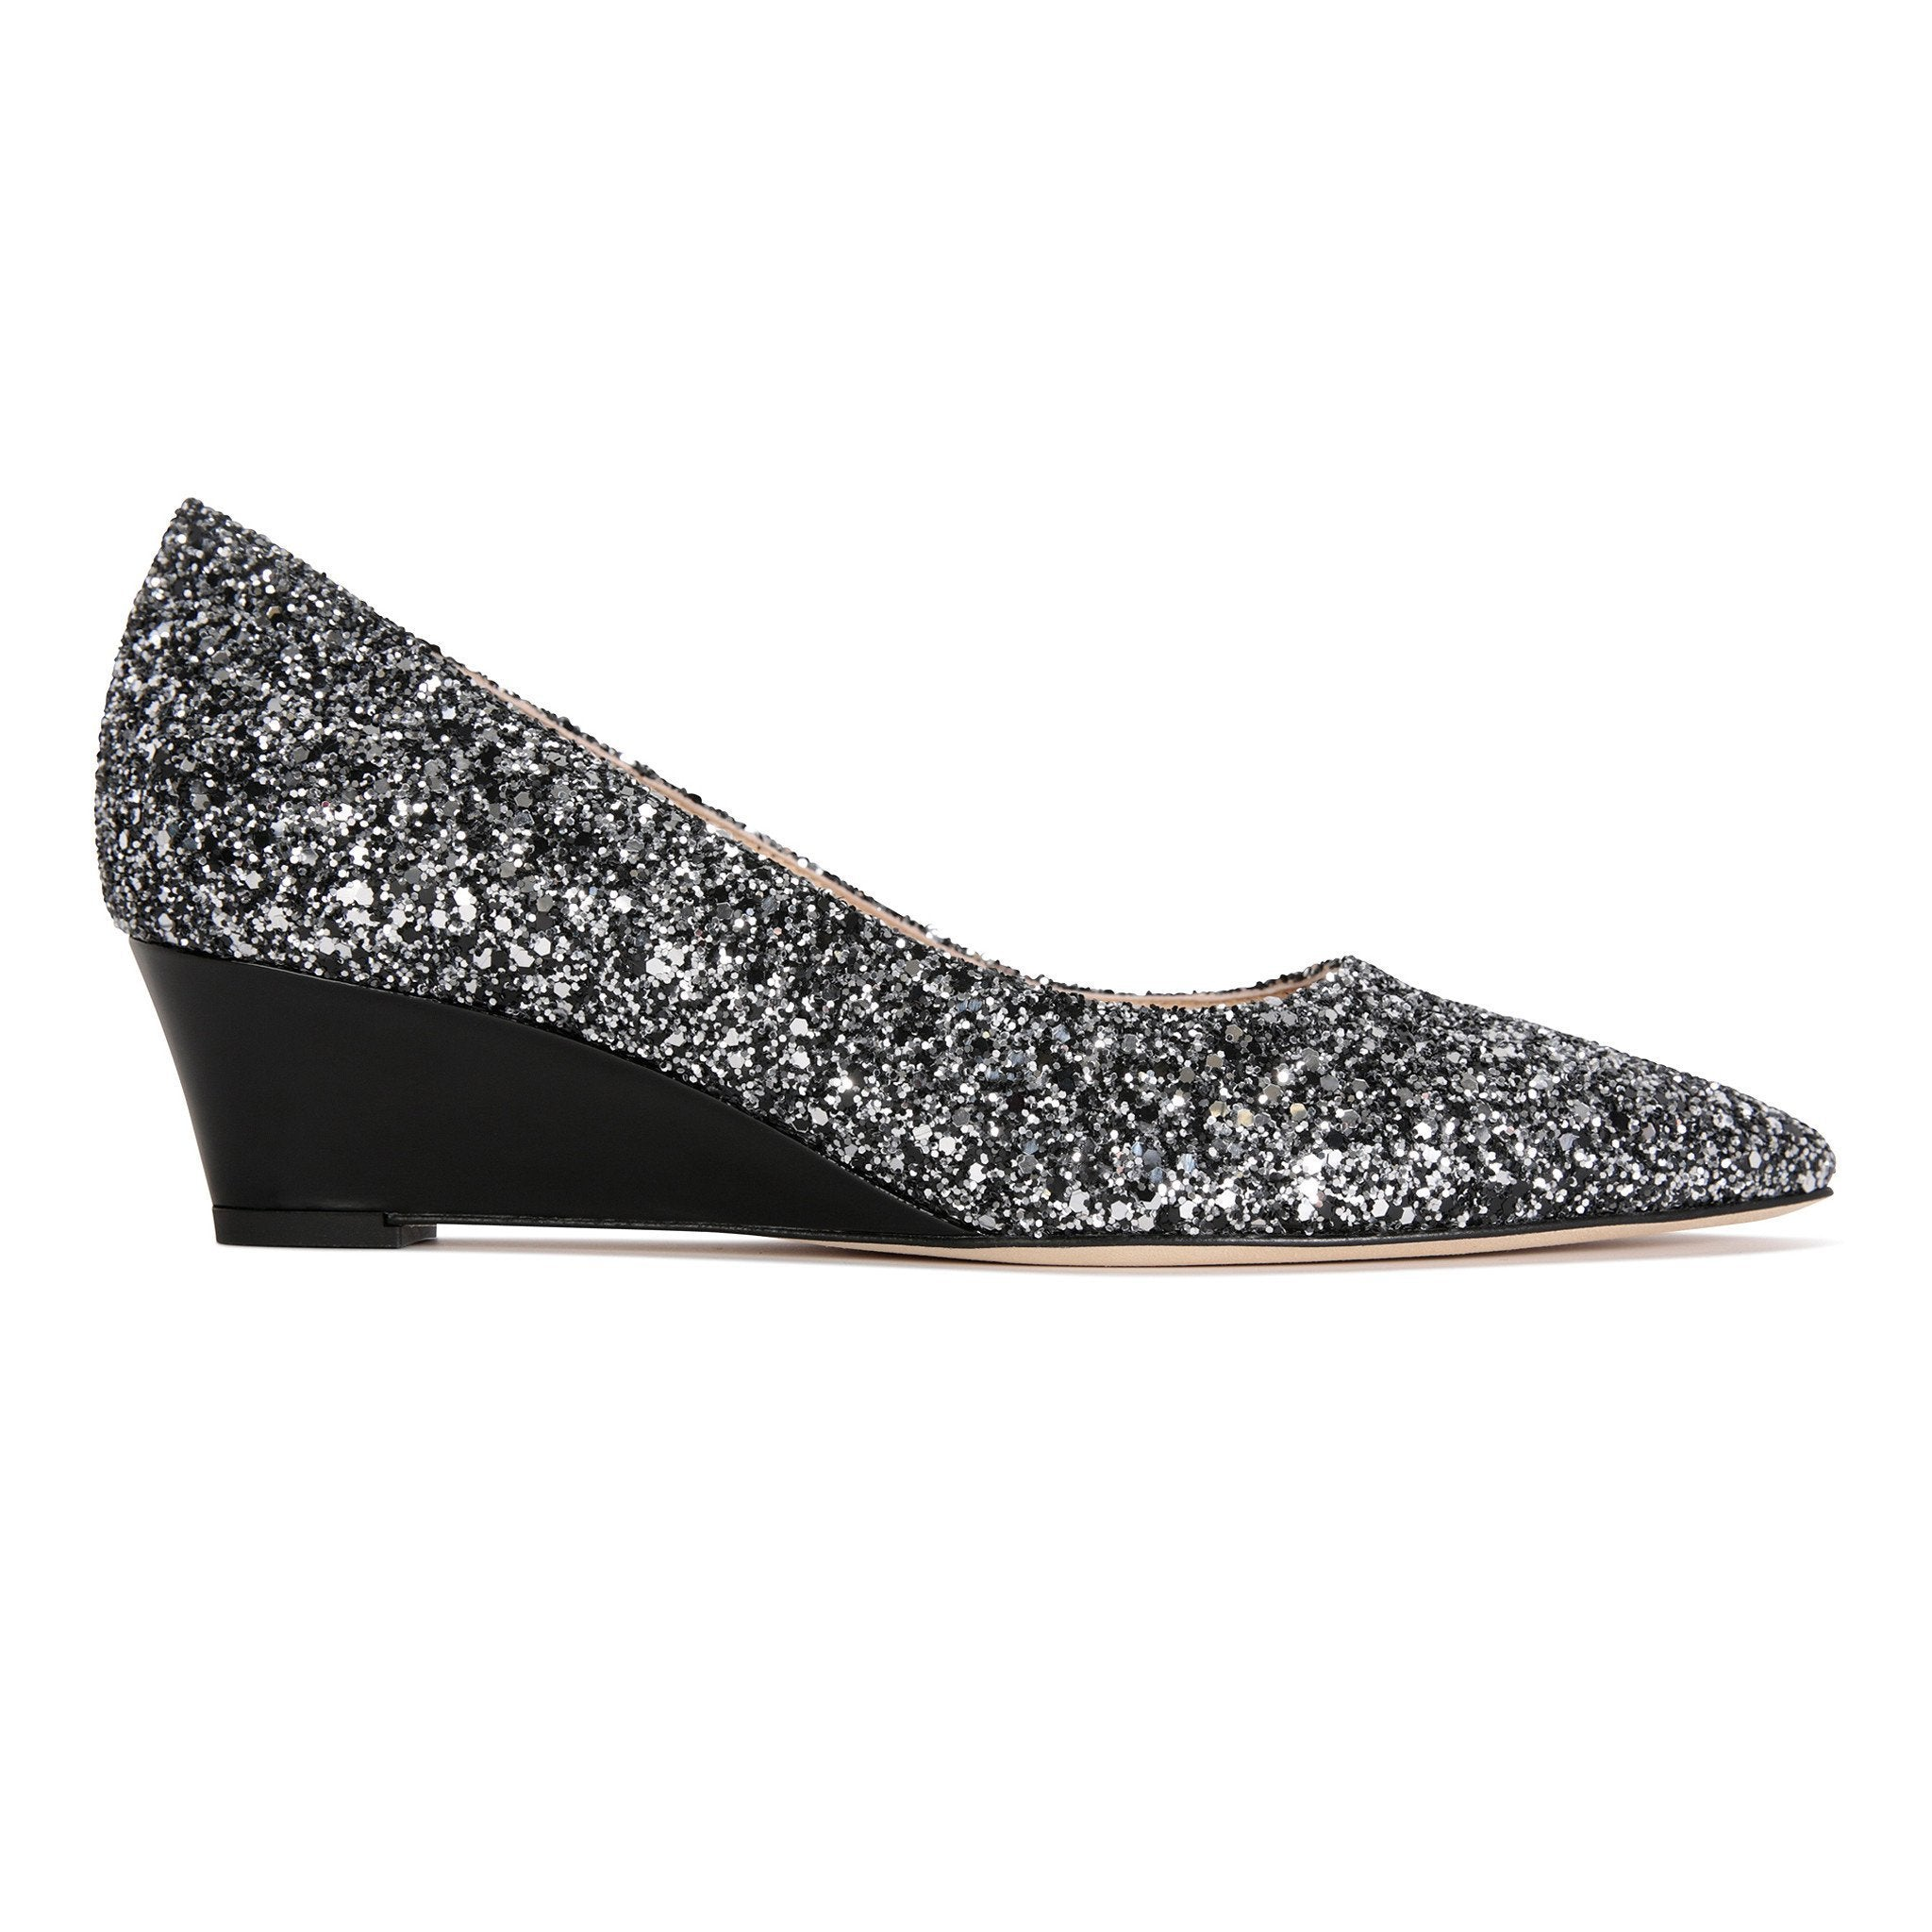 TRENTO - Glitter Notte + Patent Nero, VIAJIYU - Women's Hand Made Sustainable Luxury Shoes. Made in Italy. Made to Order.